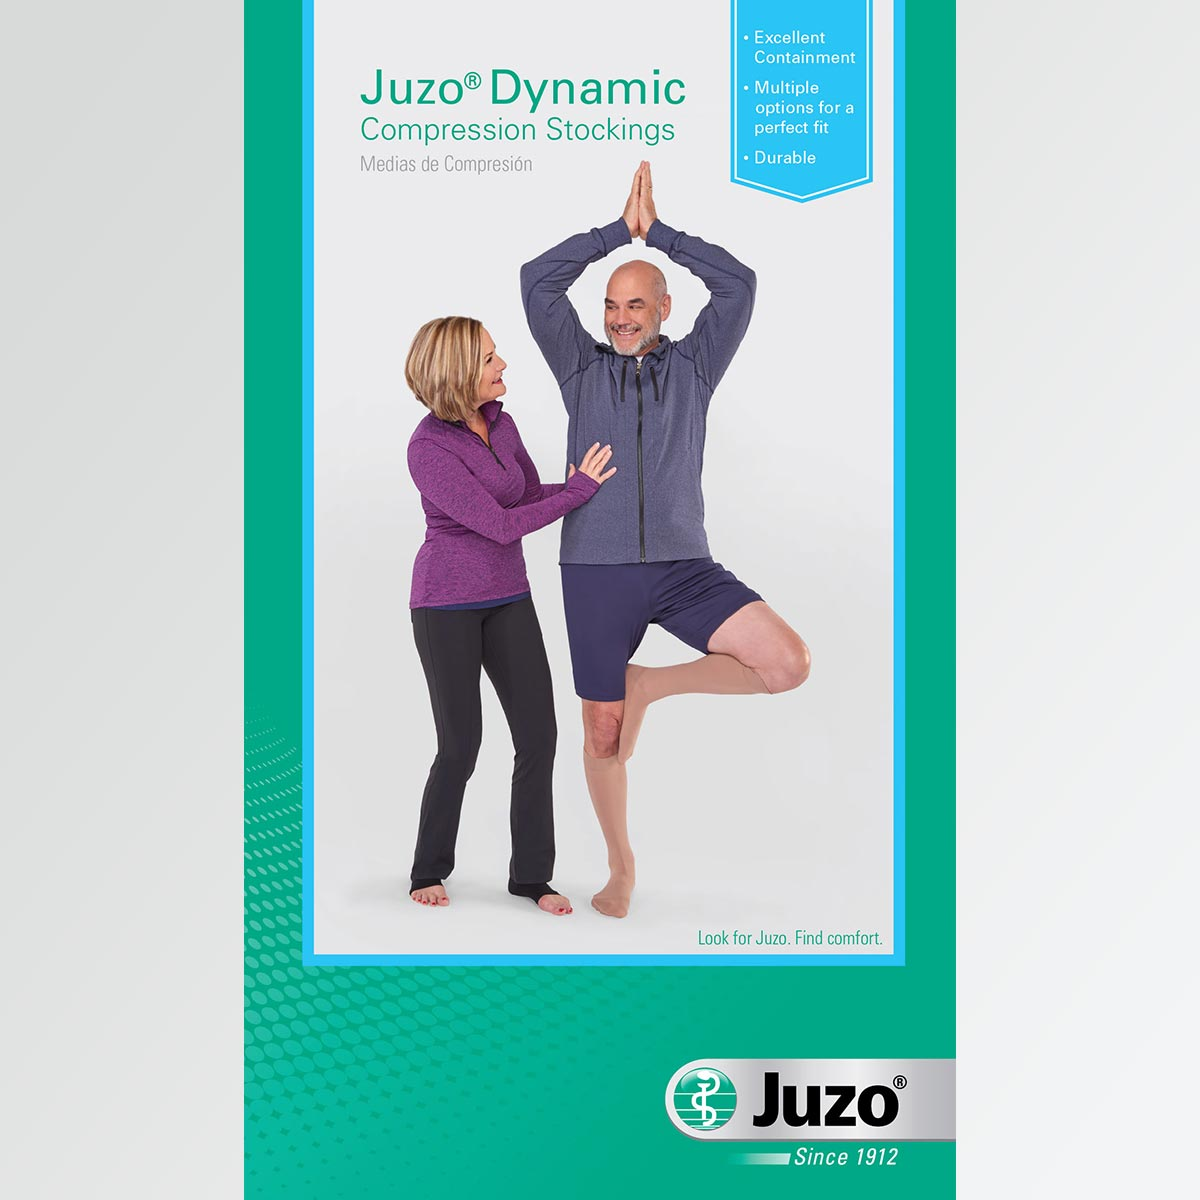 Juzo Dynamic Compression Stockings